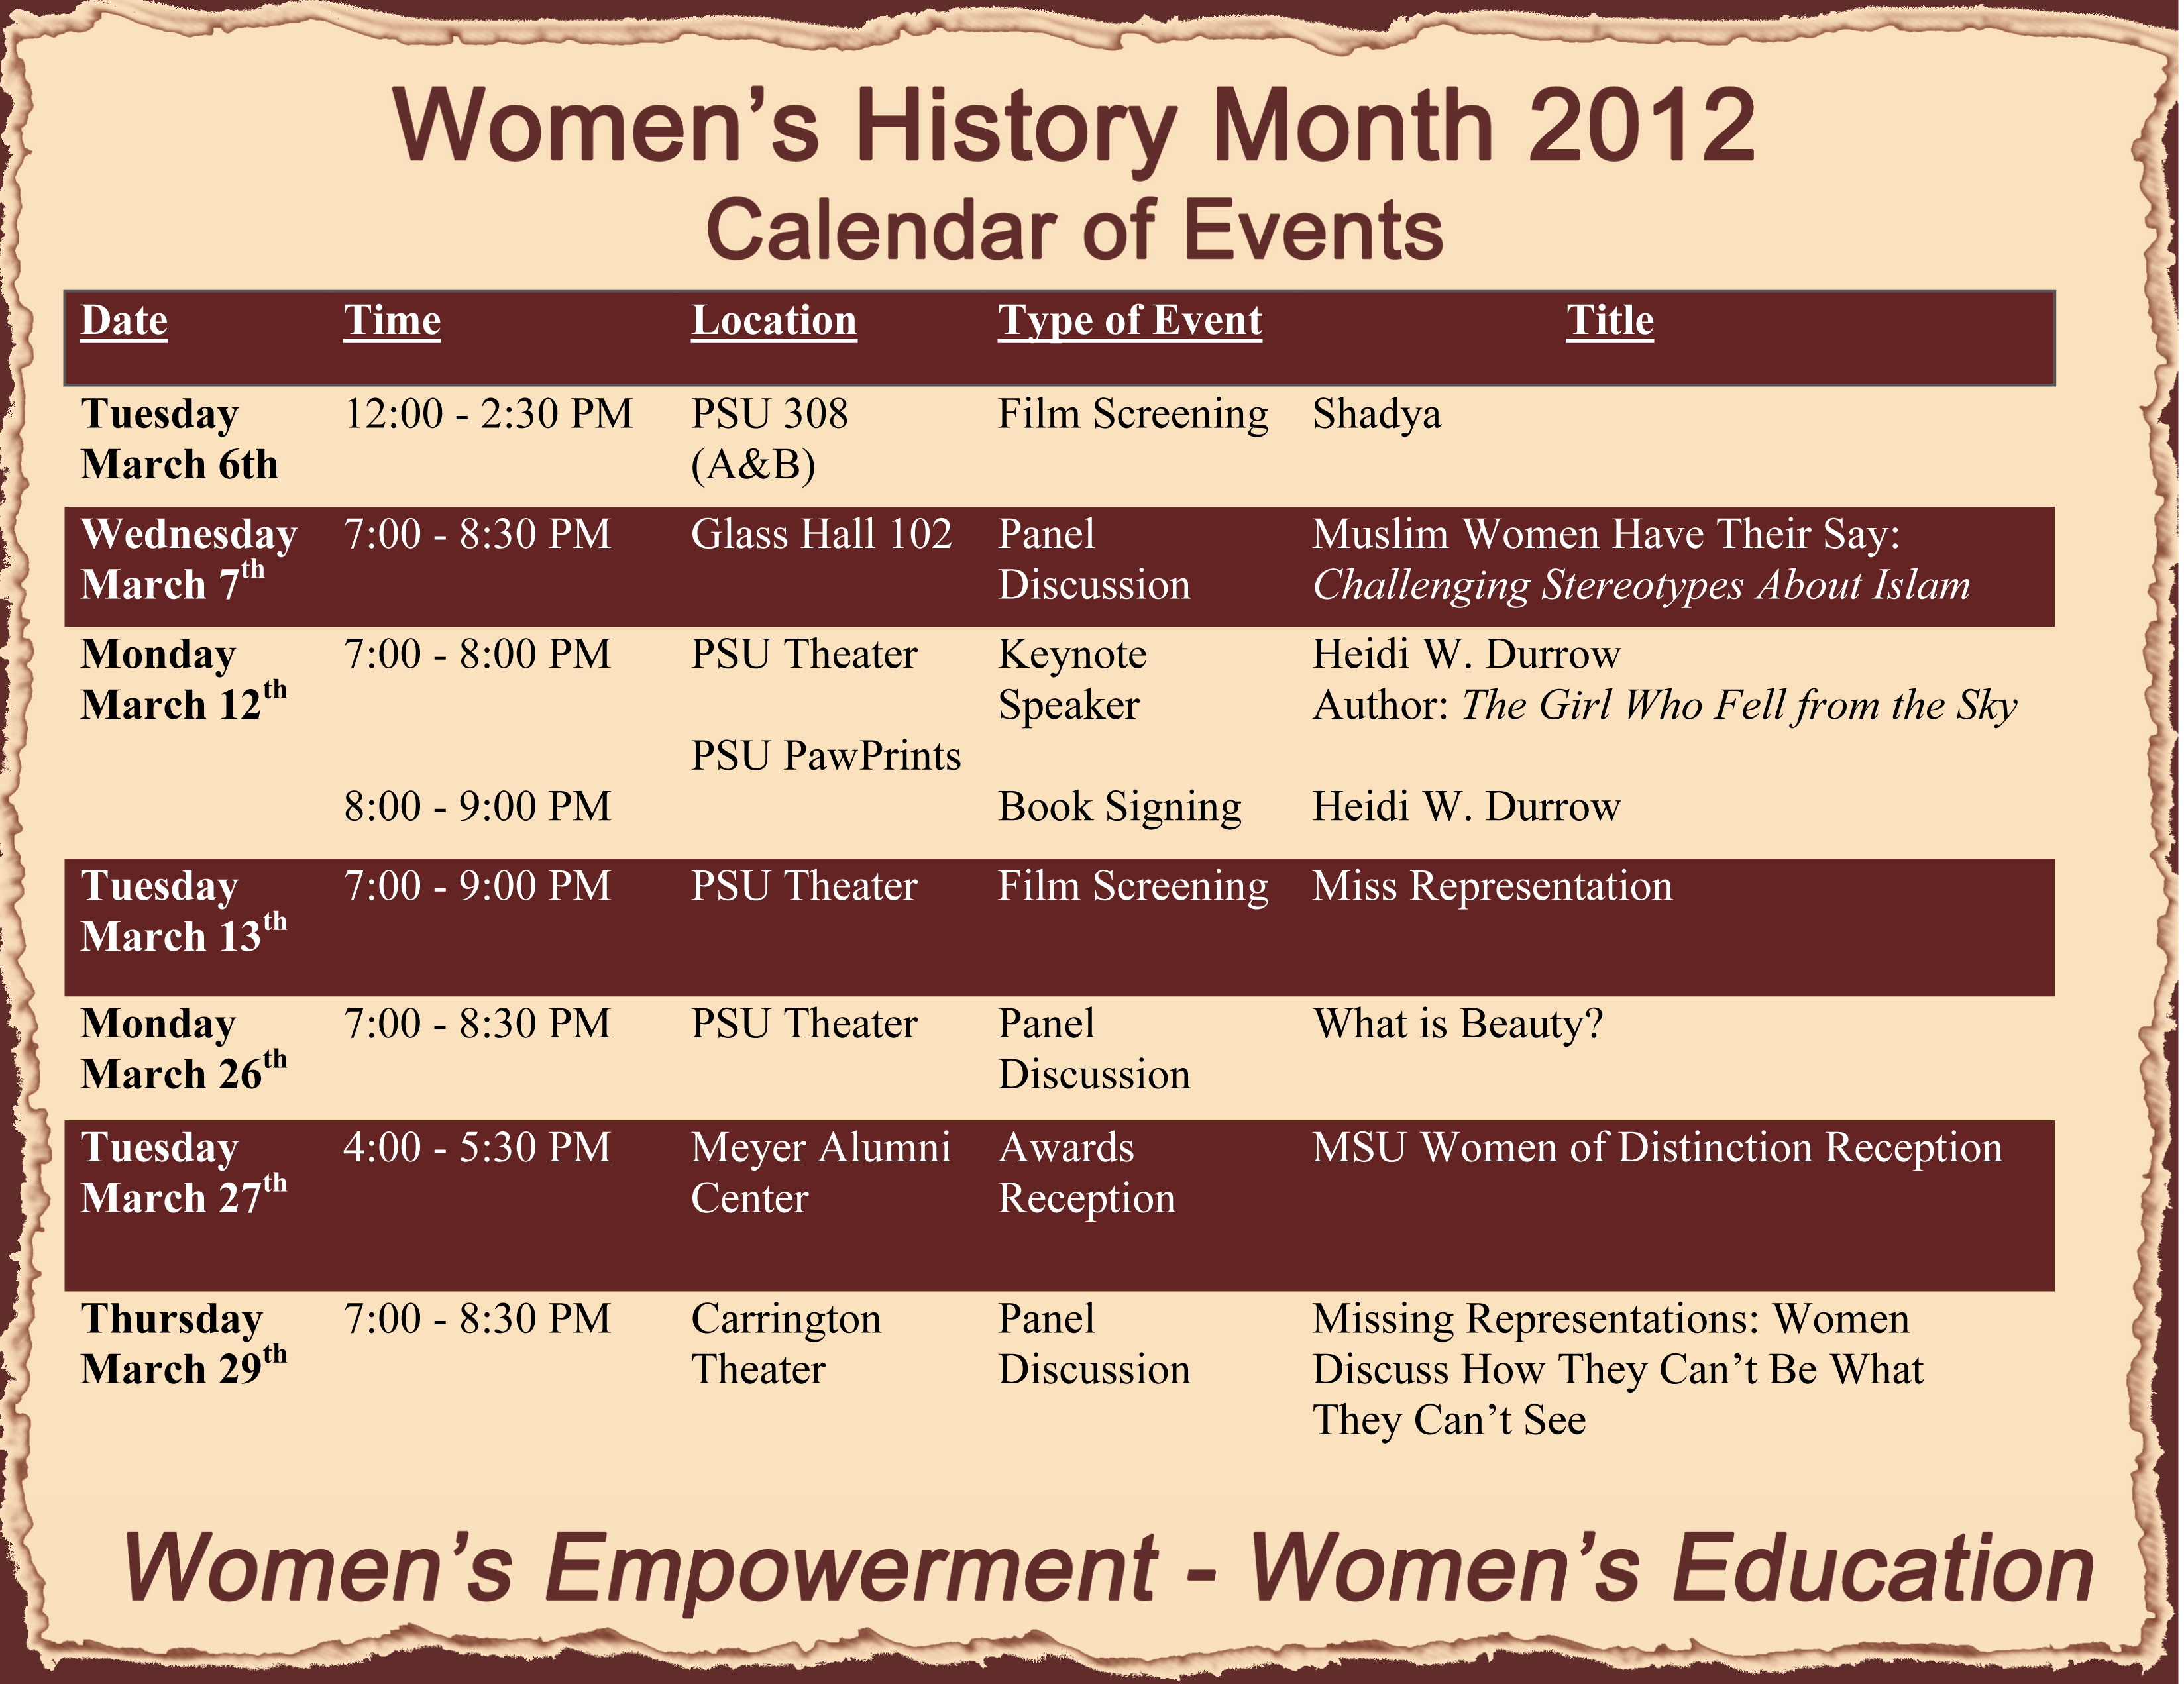 Women's History Month events include panels, films, book discussion